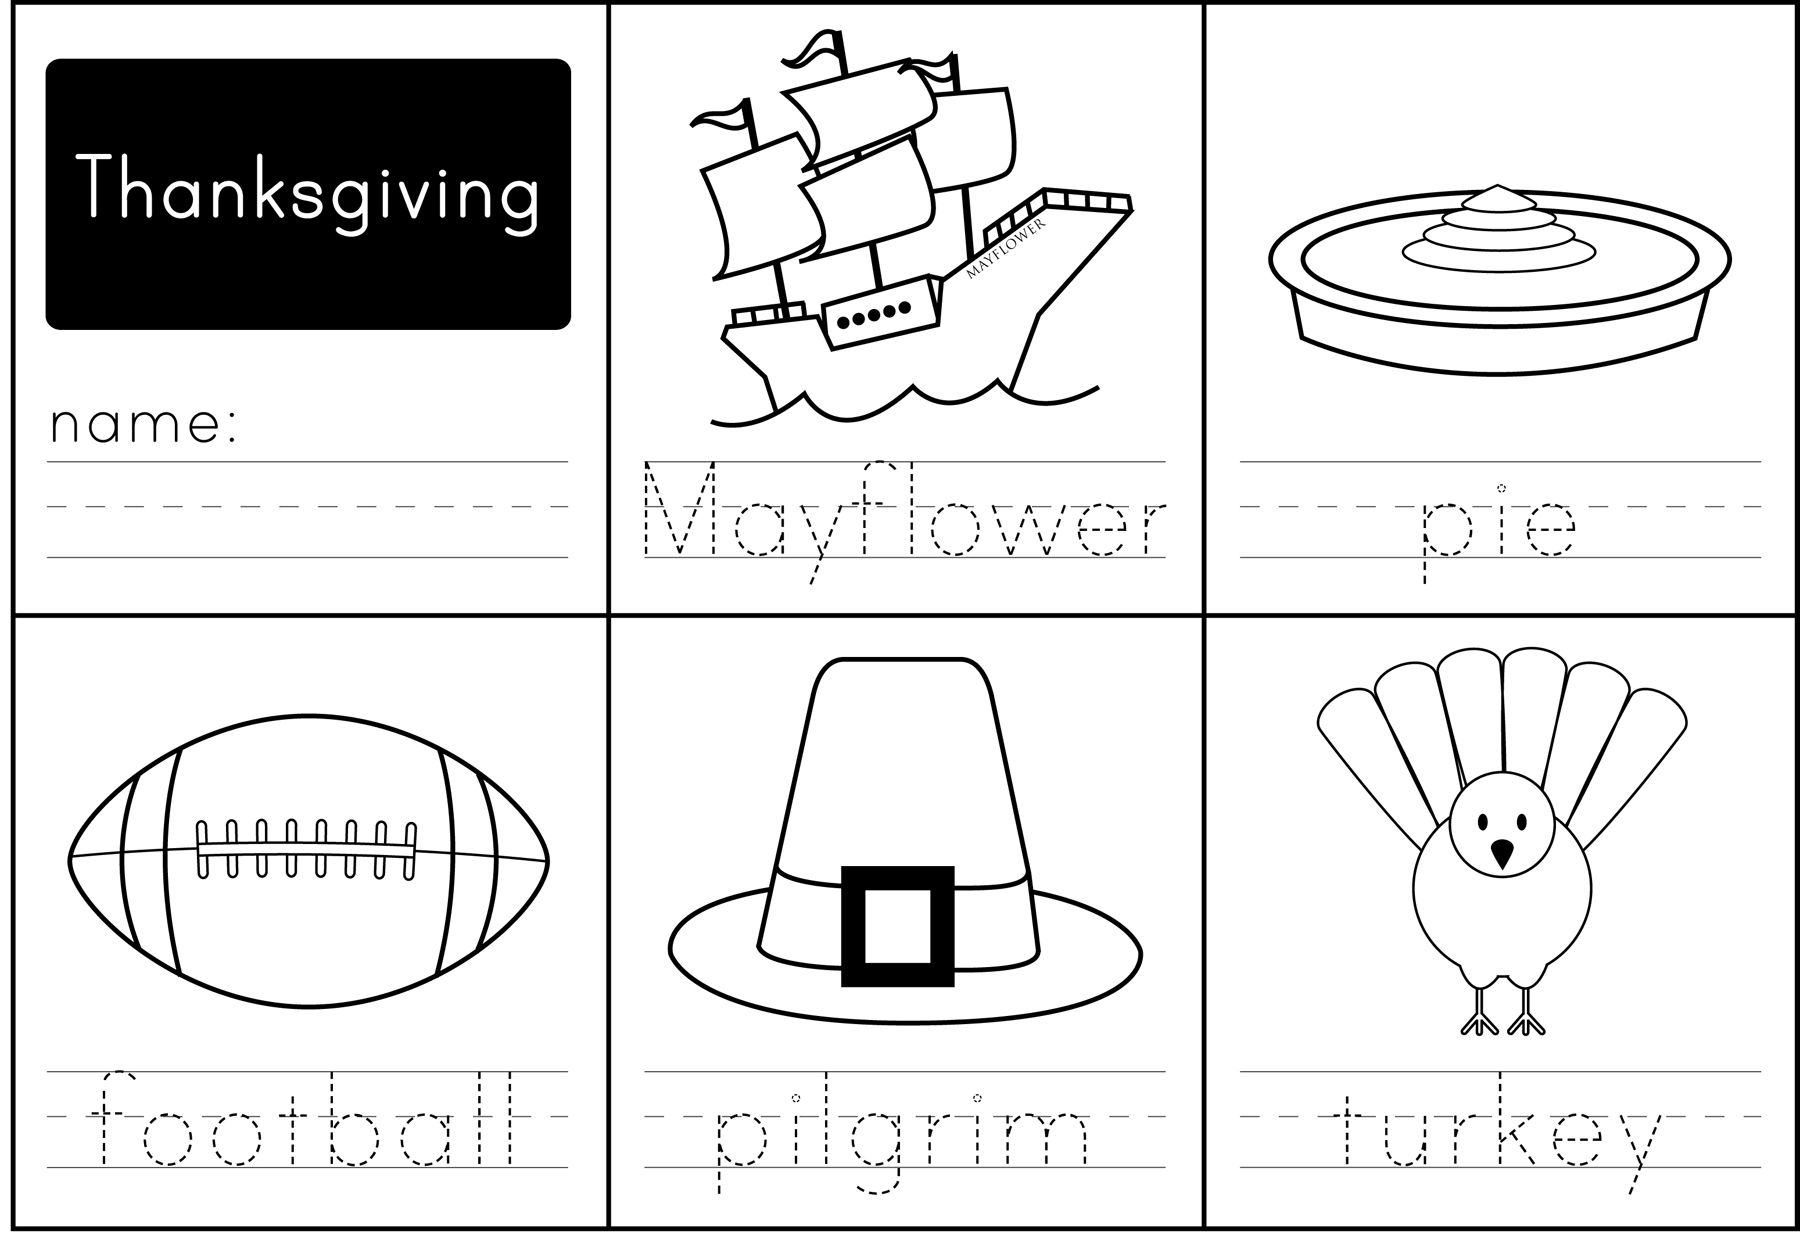 Thanksgiving Words All New Worksheet For Your Little